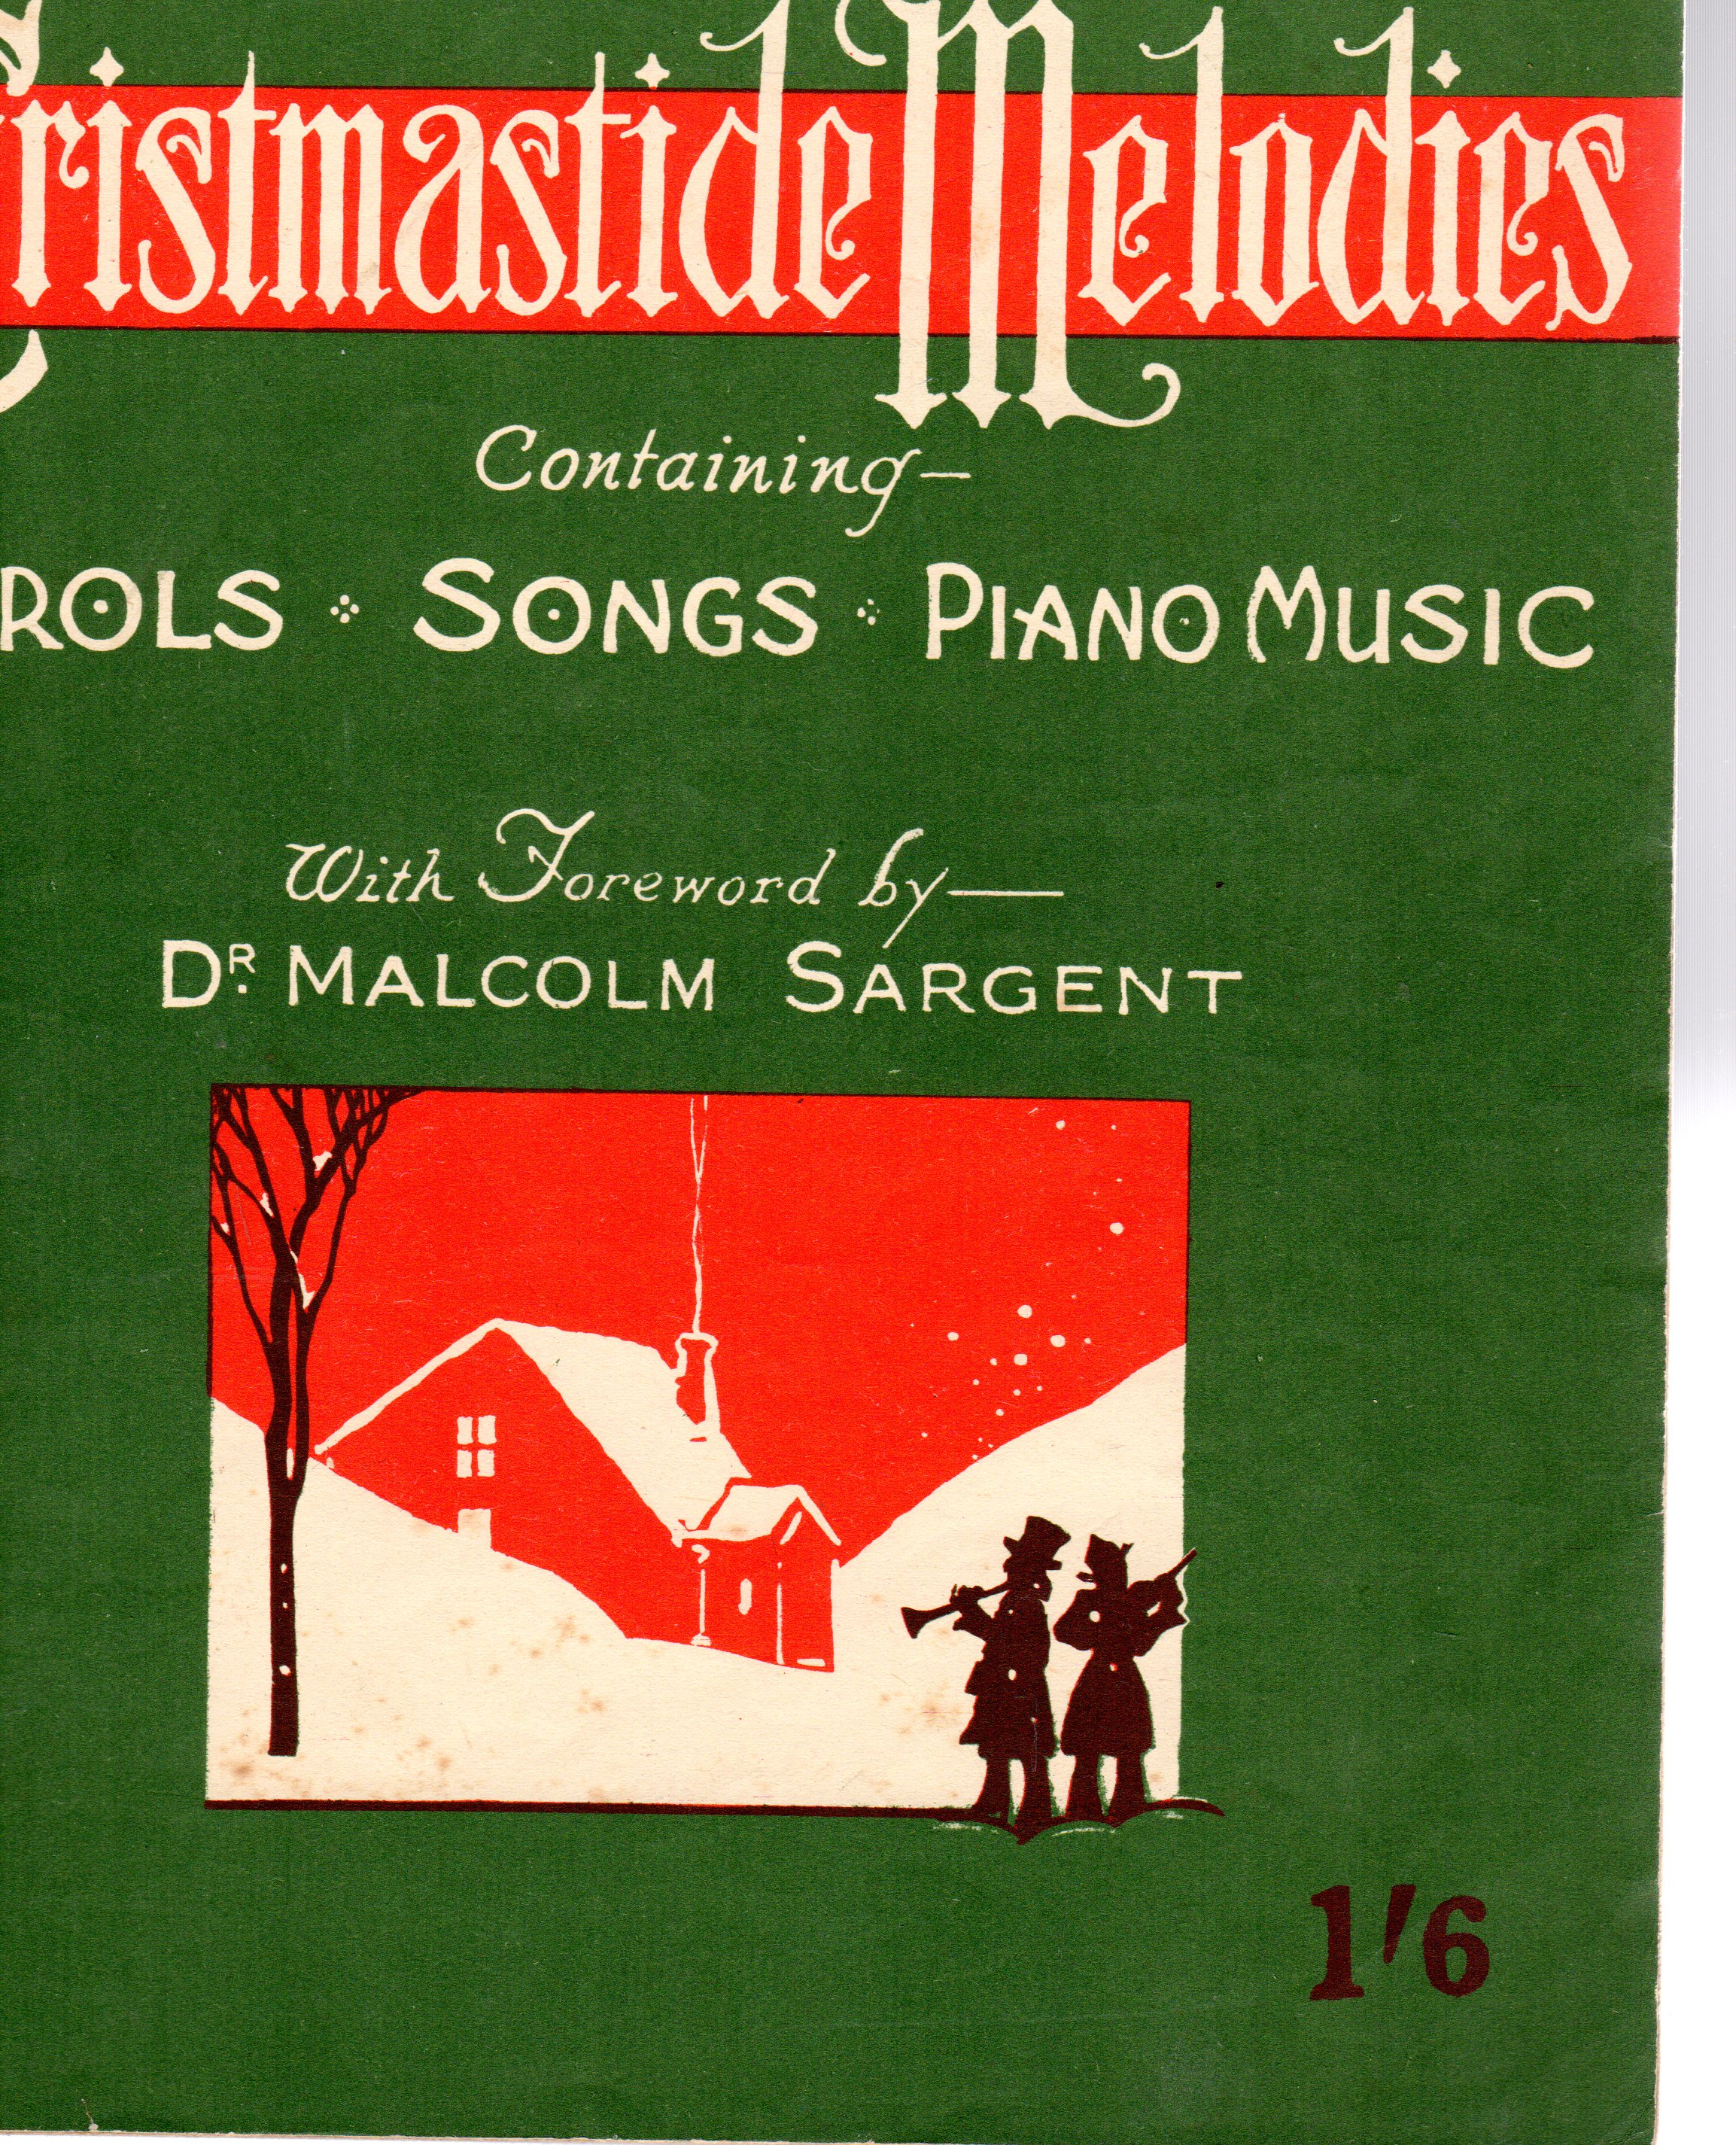 Image for News Chronicle - Christmastide Melodies - Containing Carols Songs Piano Music